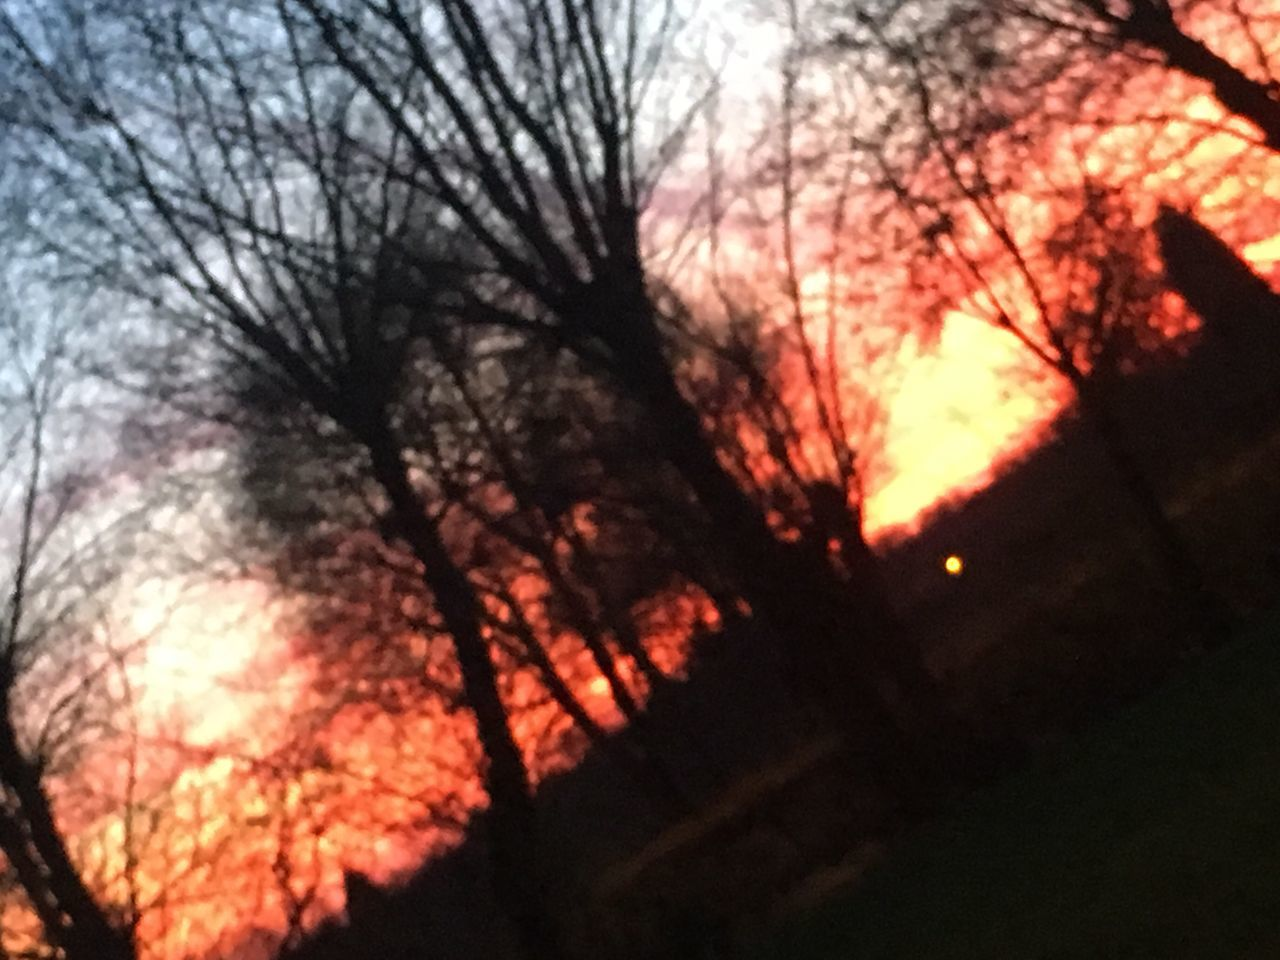 bare tree, tree, branch, sunset, no people, low angle view, nature, outdoors, close-up, beauty in nature, sky, day